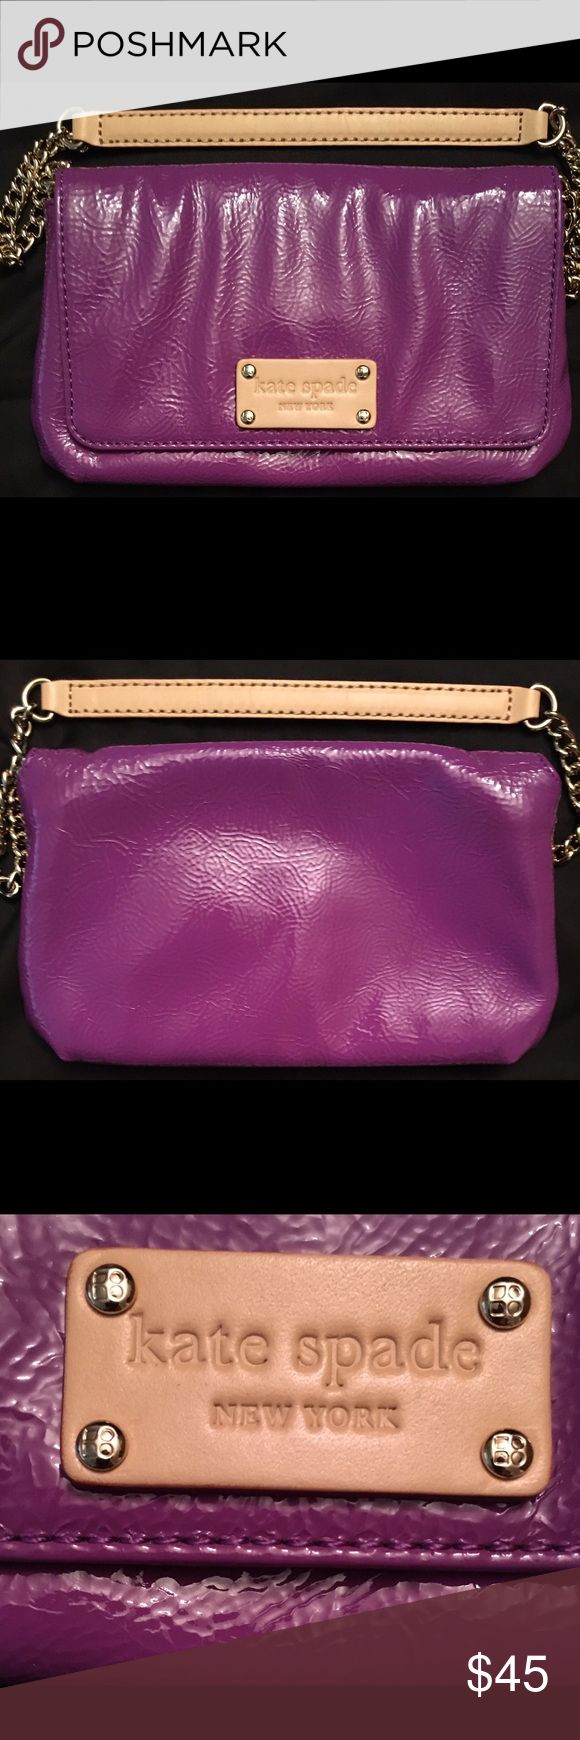 💜Authentic Kate Spade Clutch/mini bag💜 💜Authentic Kate Spade Patent leather Purple Clutch/mini bag💜 Like New! No Flaws! This adorable clutch/mini bag is perfect for going out! Interior has polka dot print and includes 4 pocket slots. Top two slots do not fit a credit card because of the way it's stitched. Chain can be tucked in to make into a clutch. 9 inches long by about 5 inches  tall. Chain is about 7 1/4 inches long. Great for all seasons! kate spade Bags Clutches & Wristlets